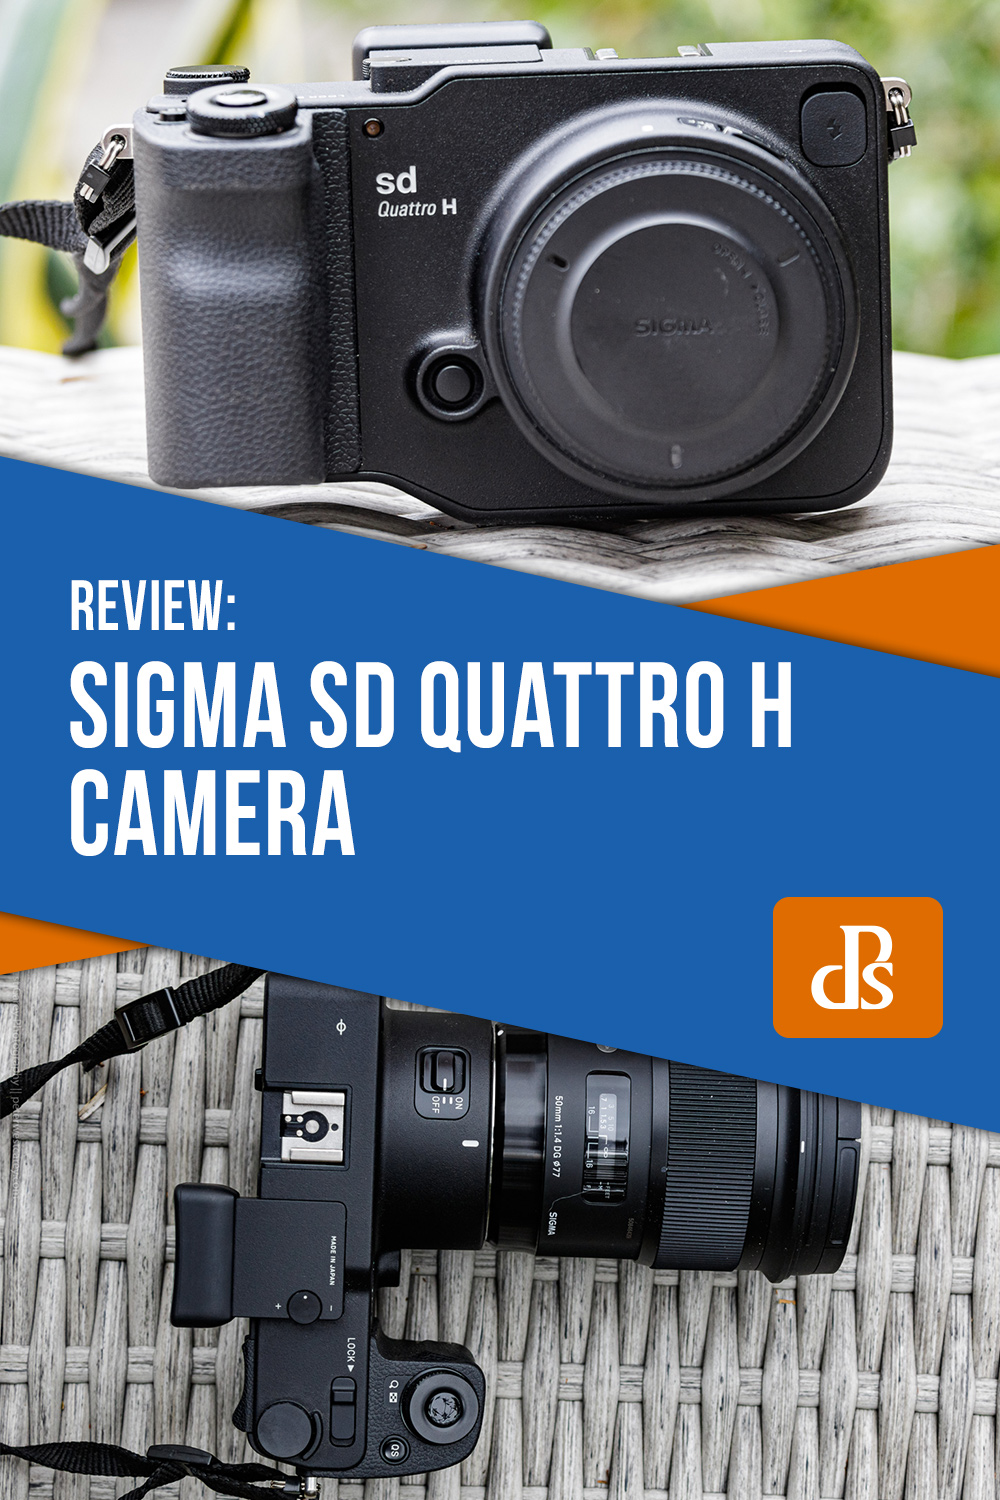 Sigma-sd-Quattro-H-Camera review